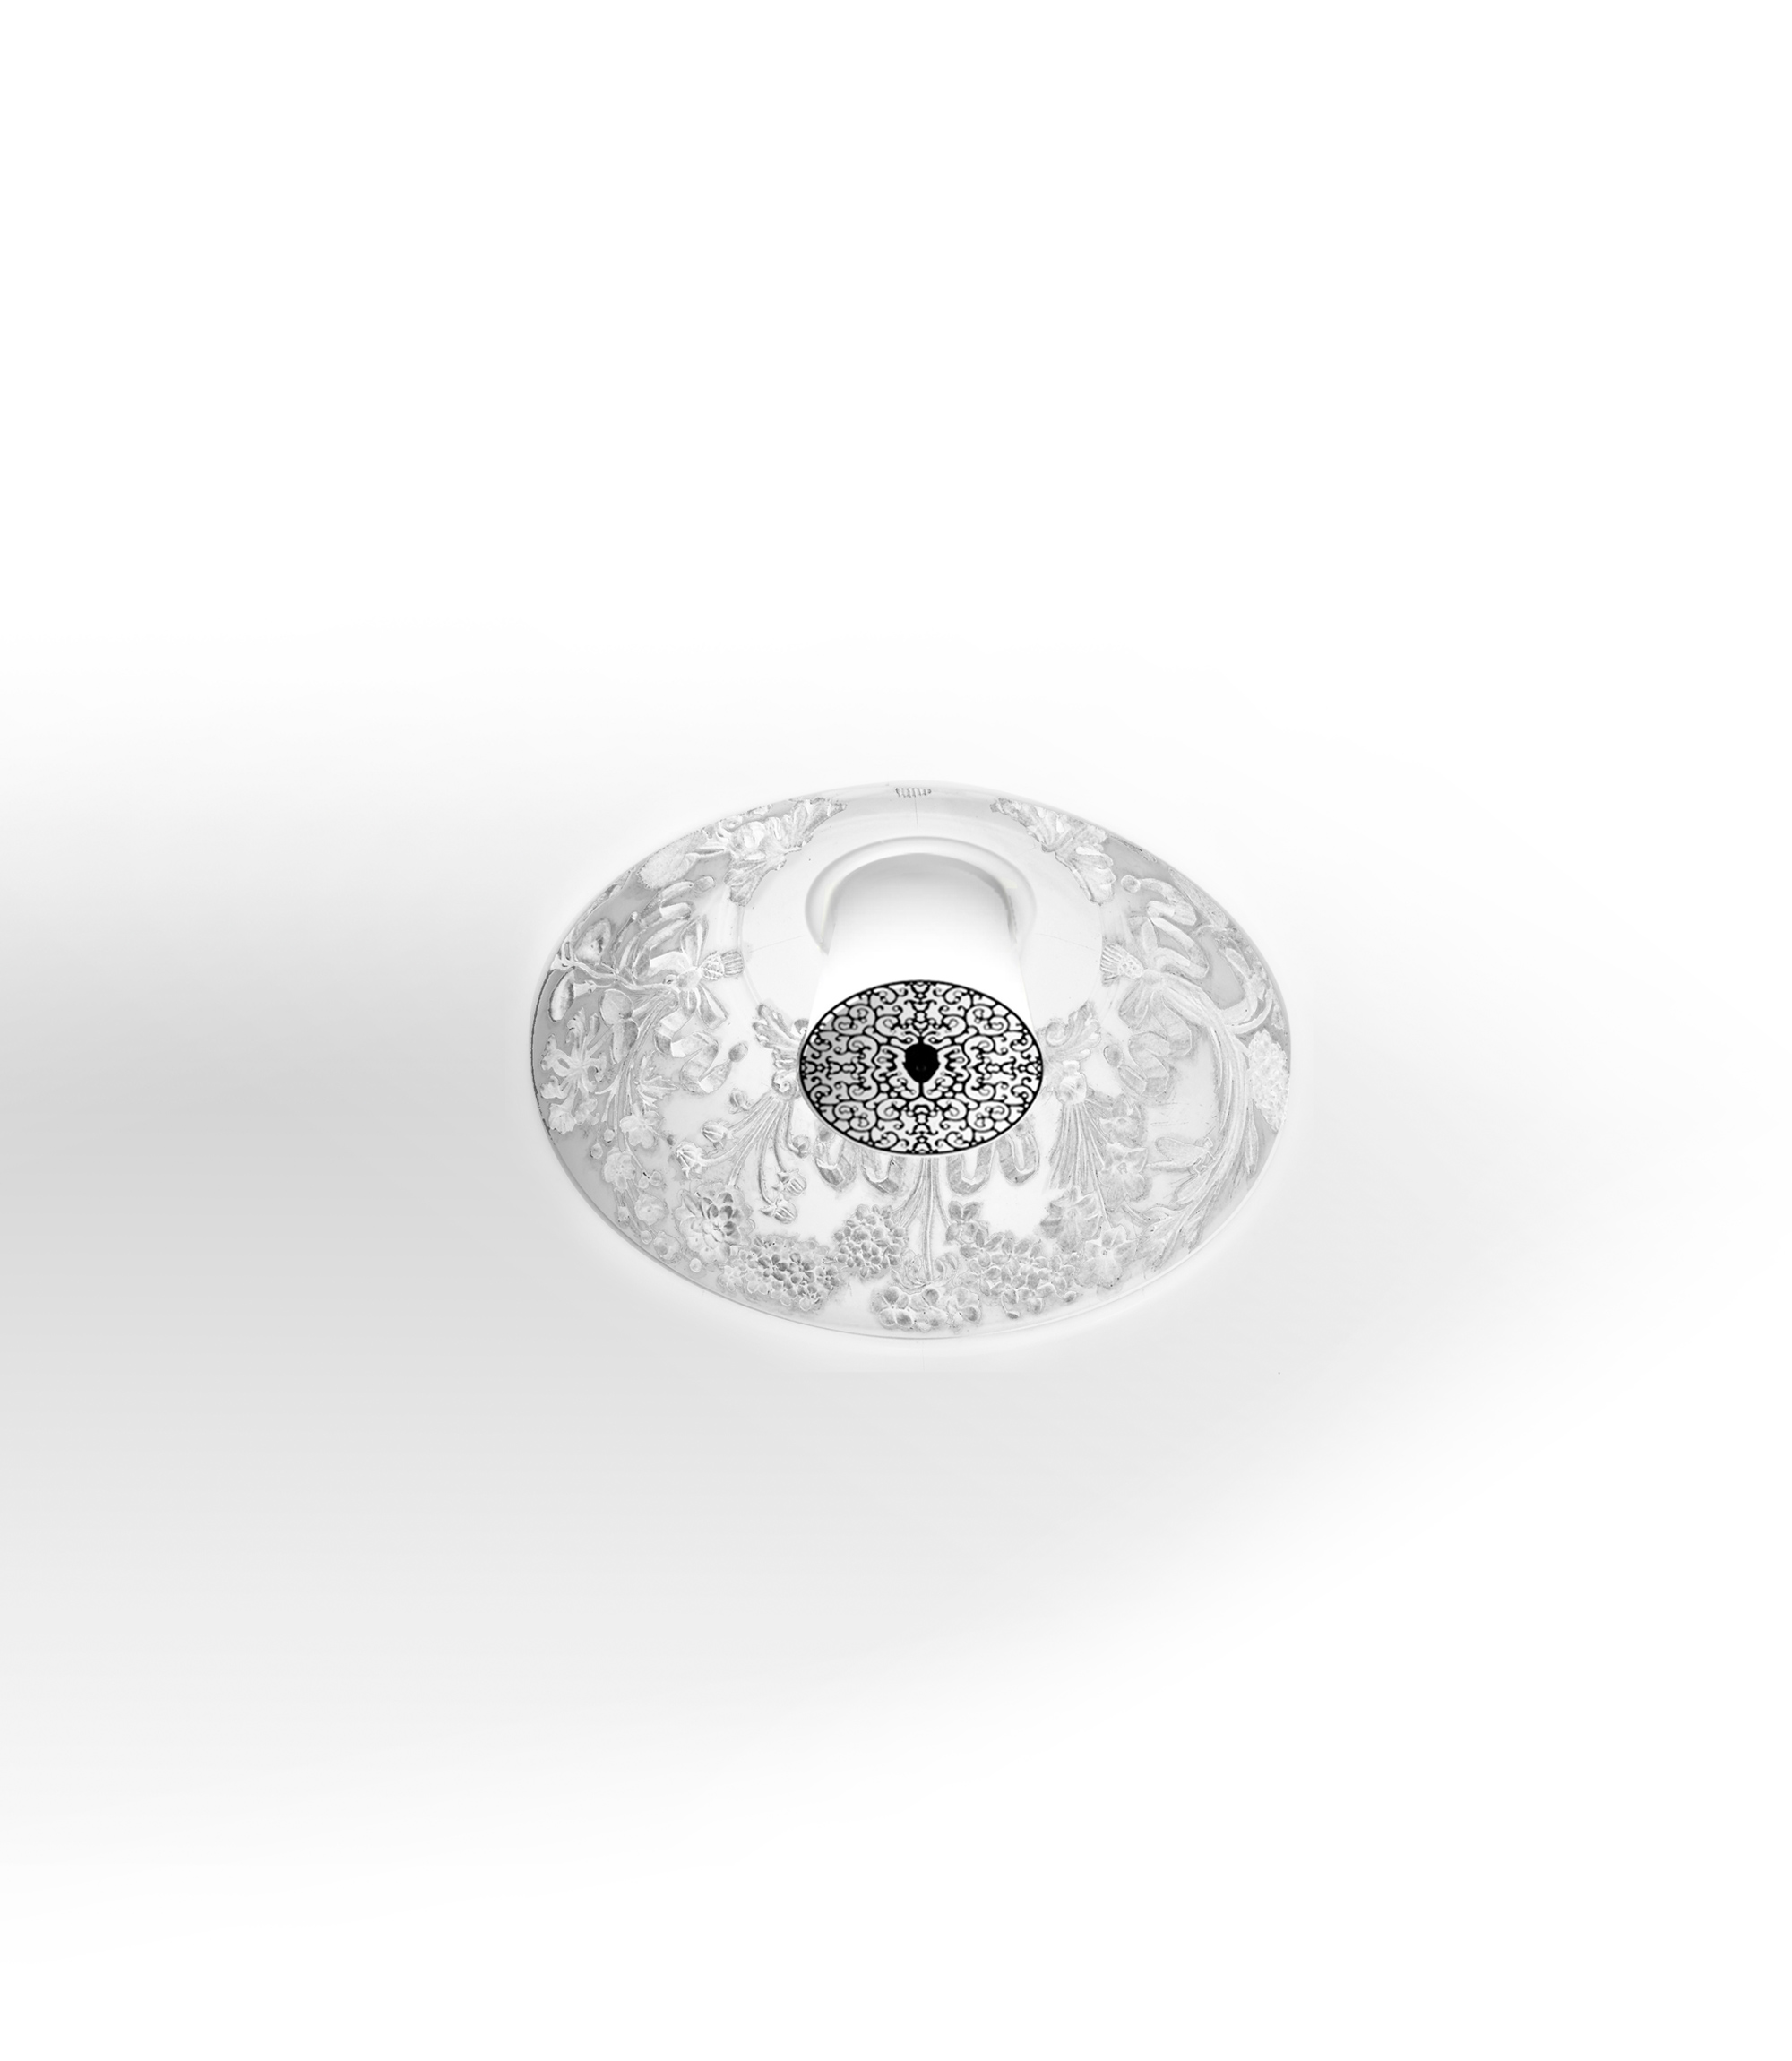 Skygarden recessed ceiling wanders flos F6430009 product still life big 3